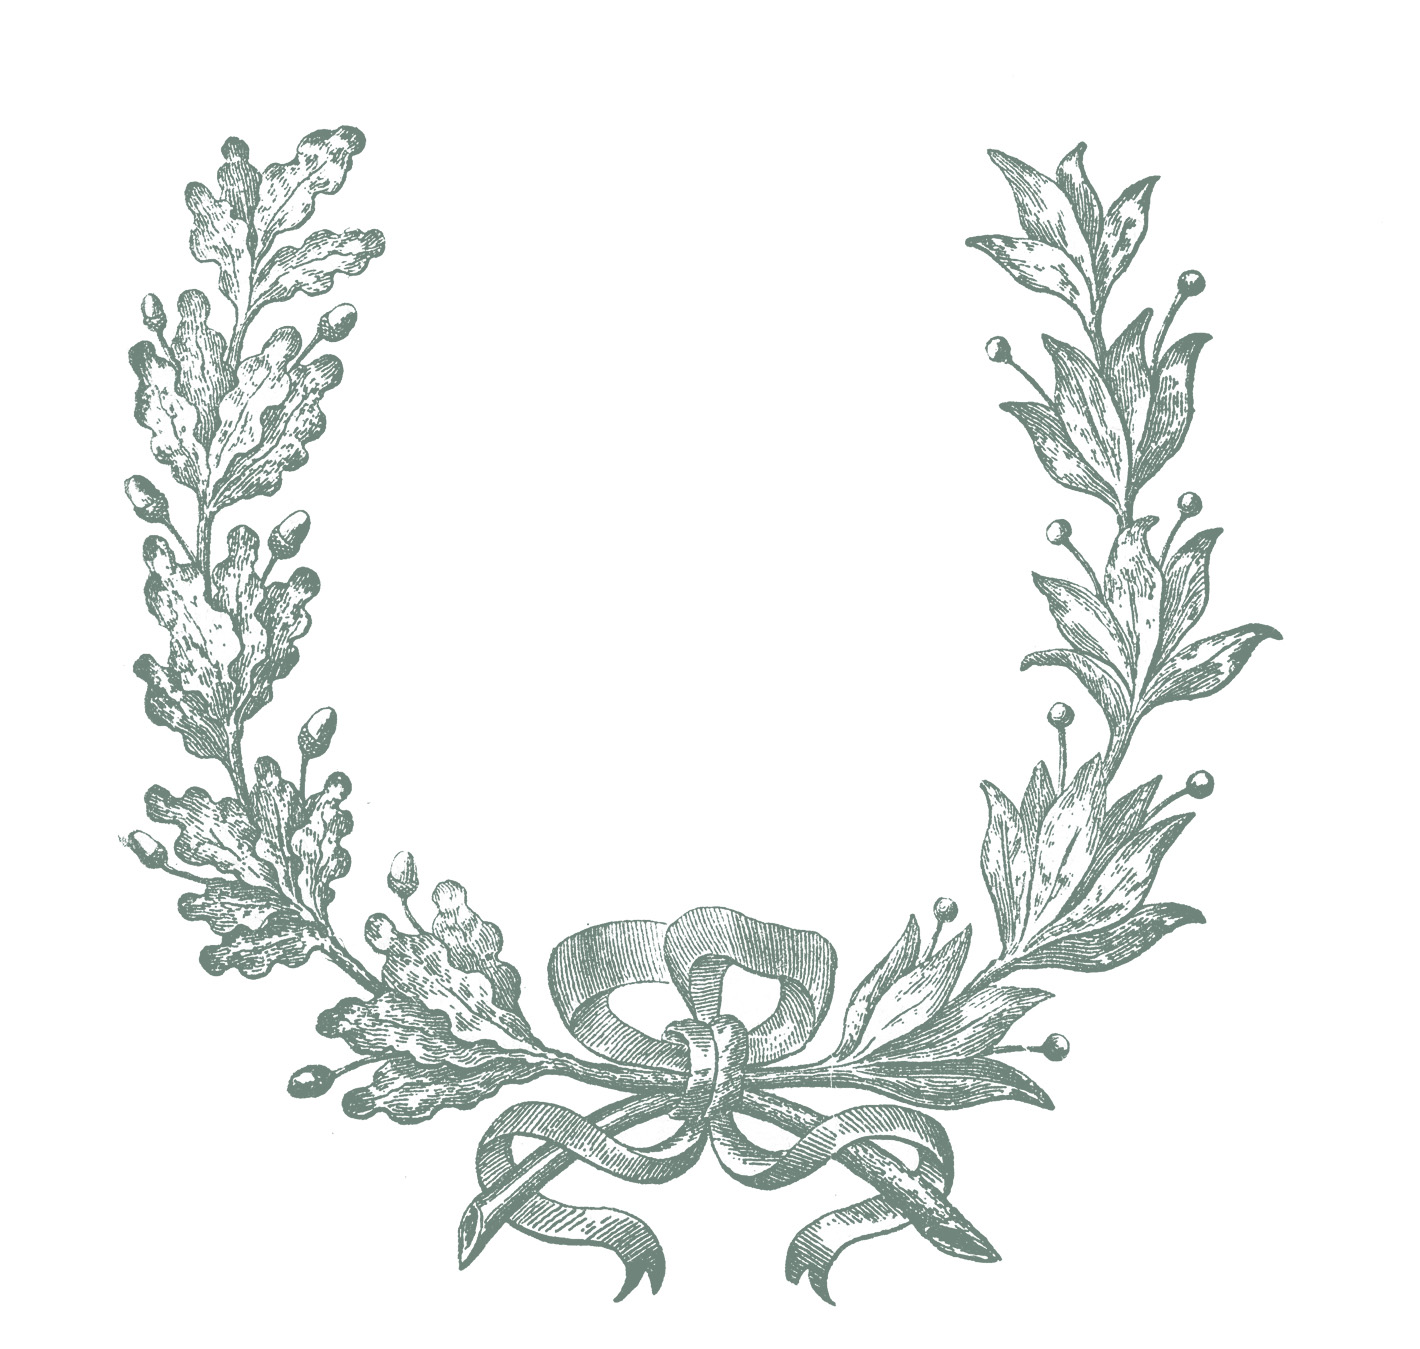 Vintage Clip Art   French Wreath Engraving   The Graphics Fairy